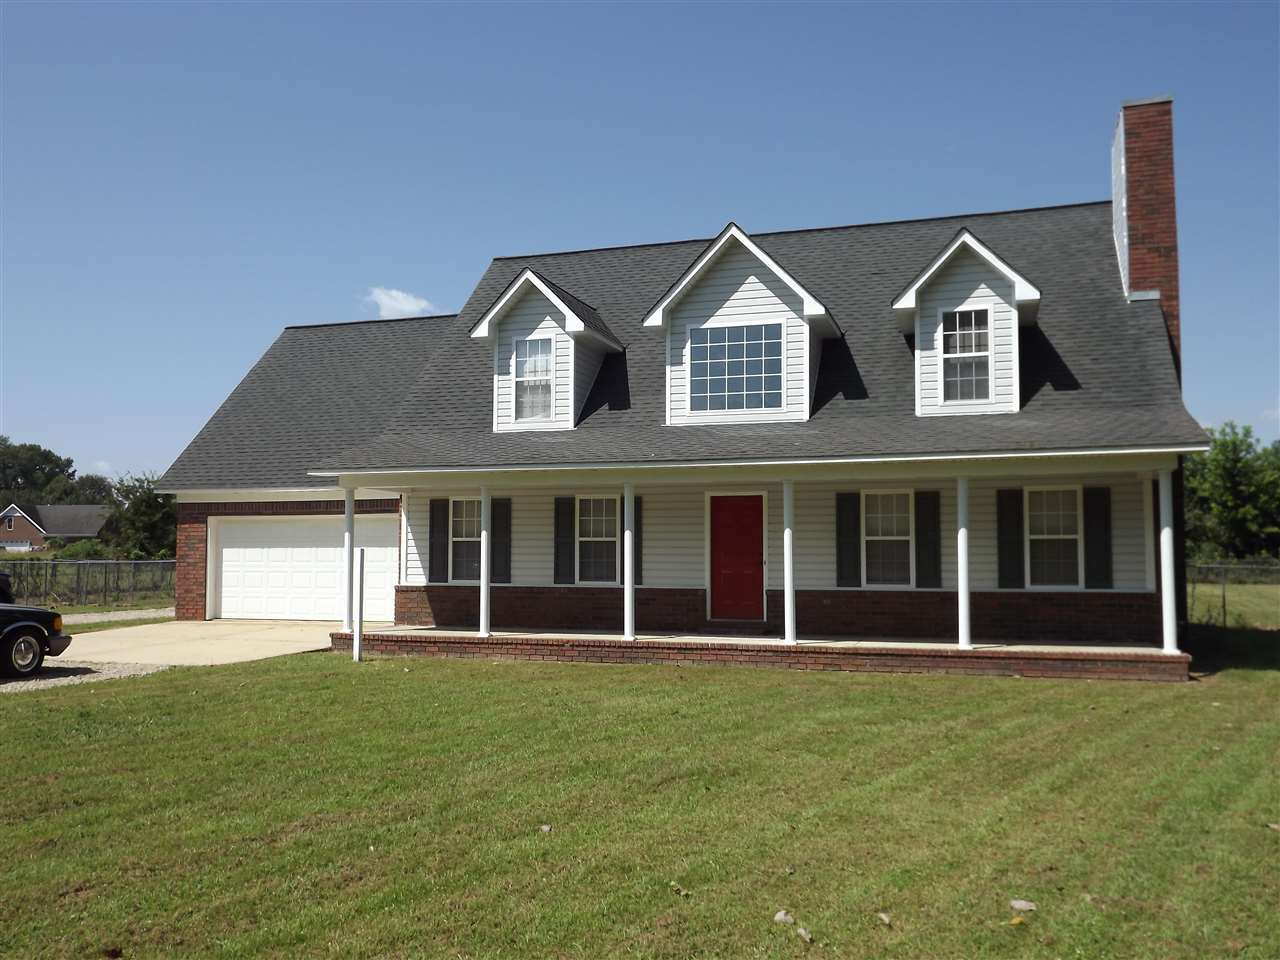 7355 Ward Millington, TN 38053 - MLS #: 10010809